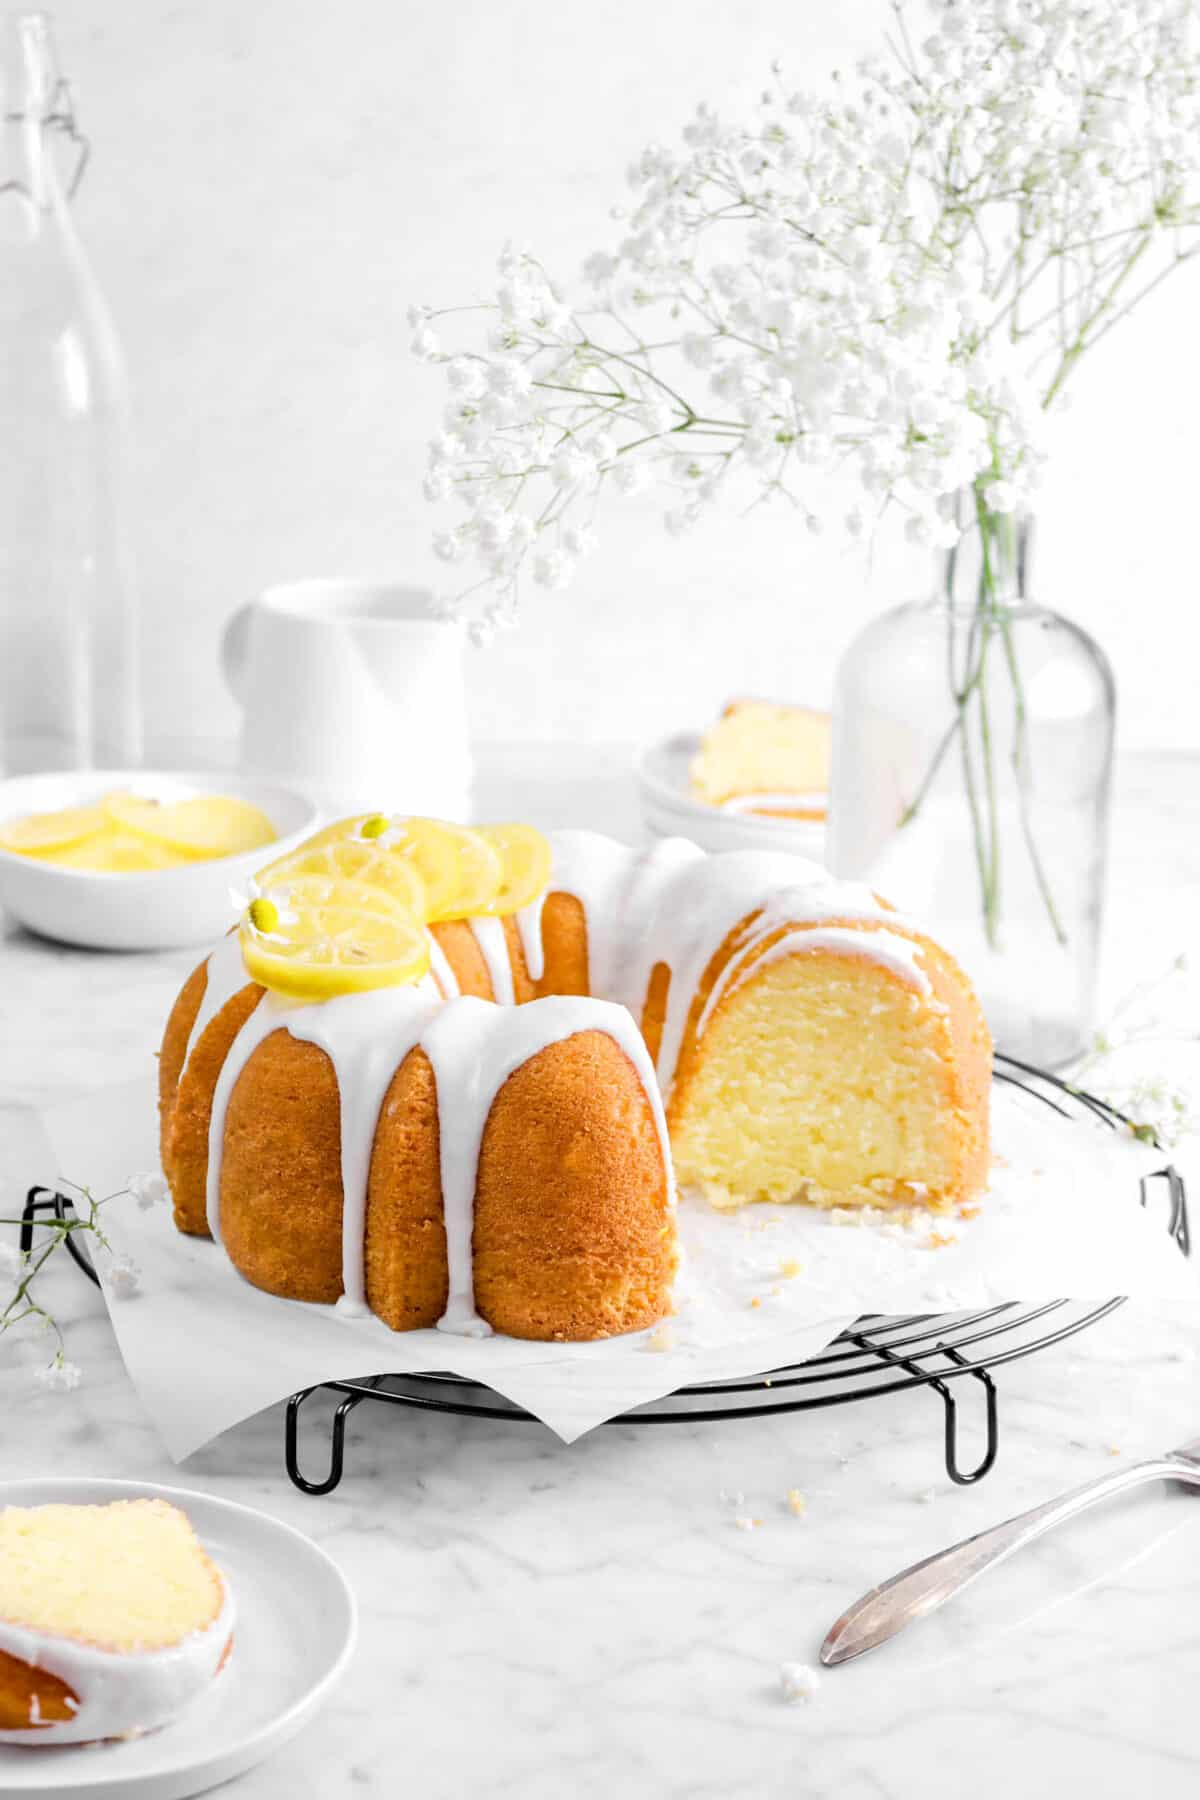 lemon bundt cake with flowers, lemon slices, a fork, and slices of cake in front and behind